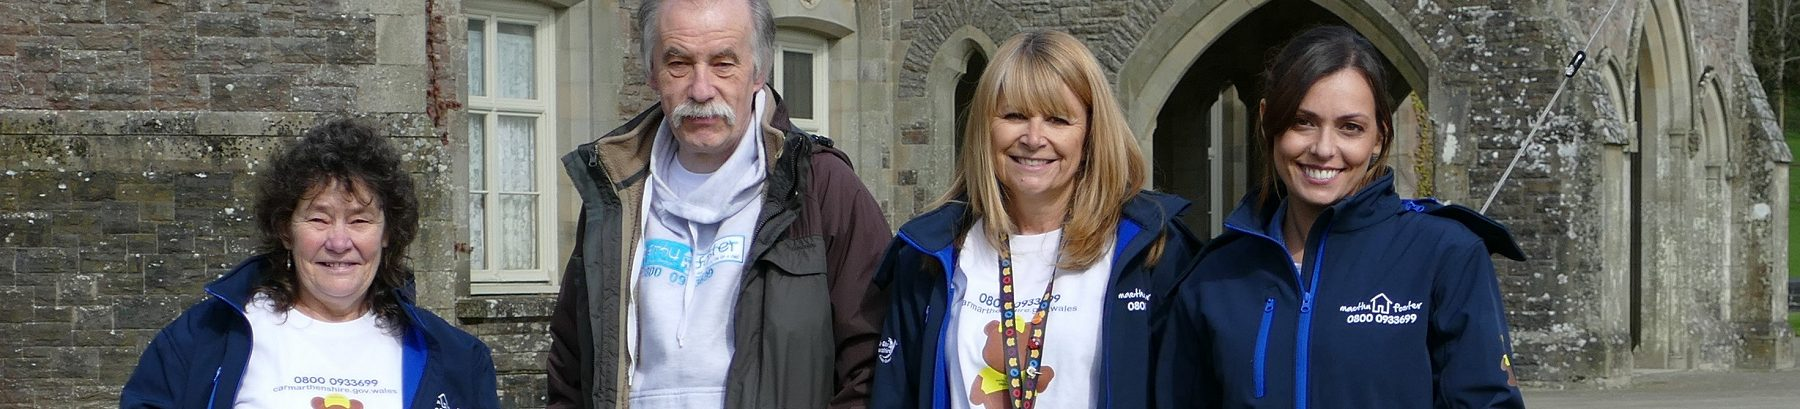 Support Team Foster Carmarthenshire